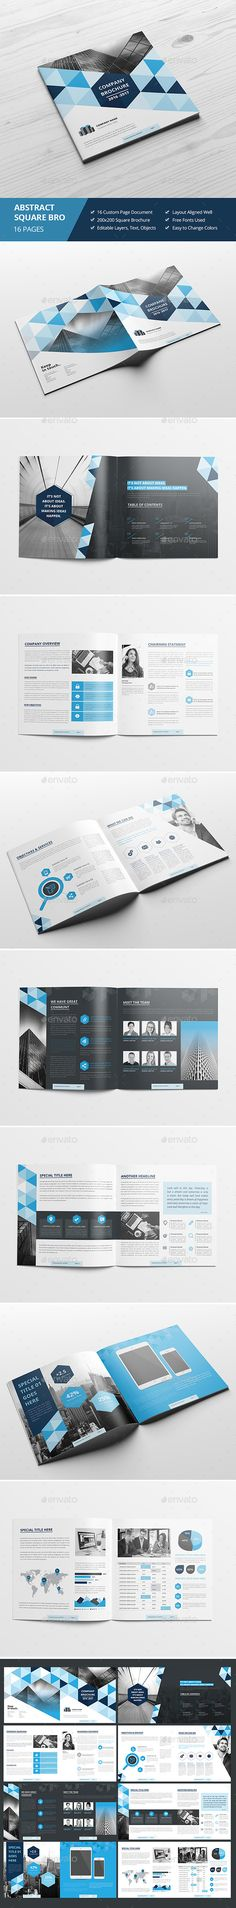 Haweya Abstract Square Brochure Template 	InDesign INDD. Download here: https://graphicriver.net/item/haweya-abstract-square-brochure-02-/17326811?ref=ksioks